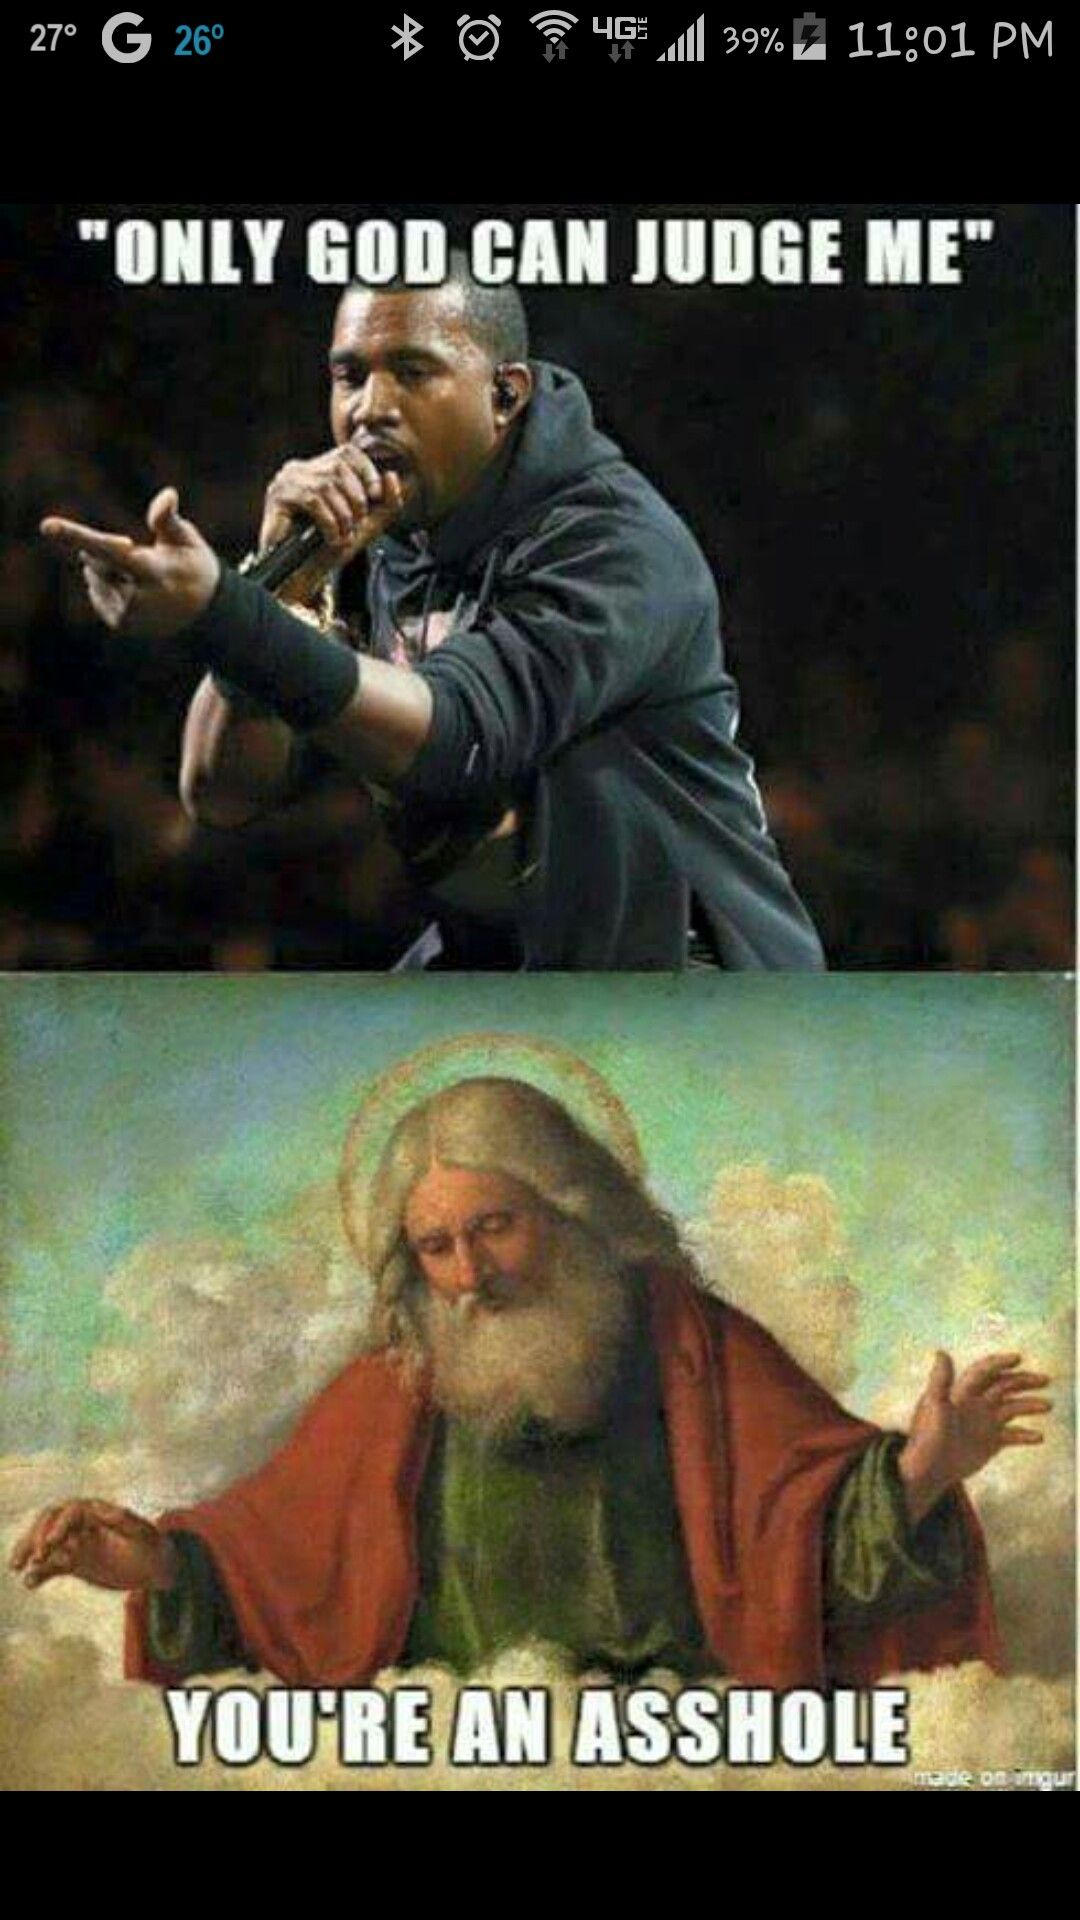 Pin By Melanie Midthun On Funny Shit Kanye West Funny Funny Pictures Pinterest Humor